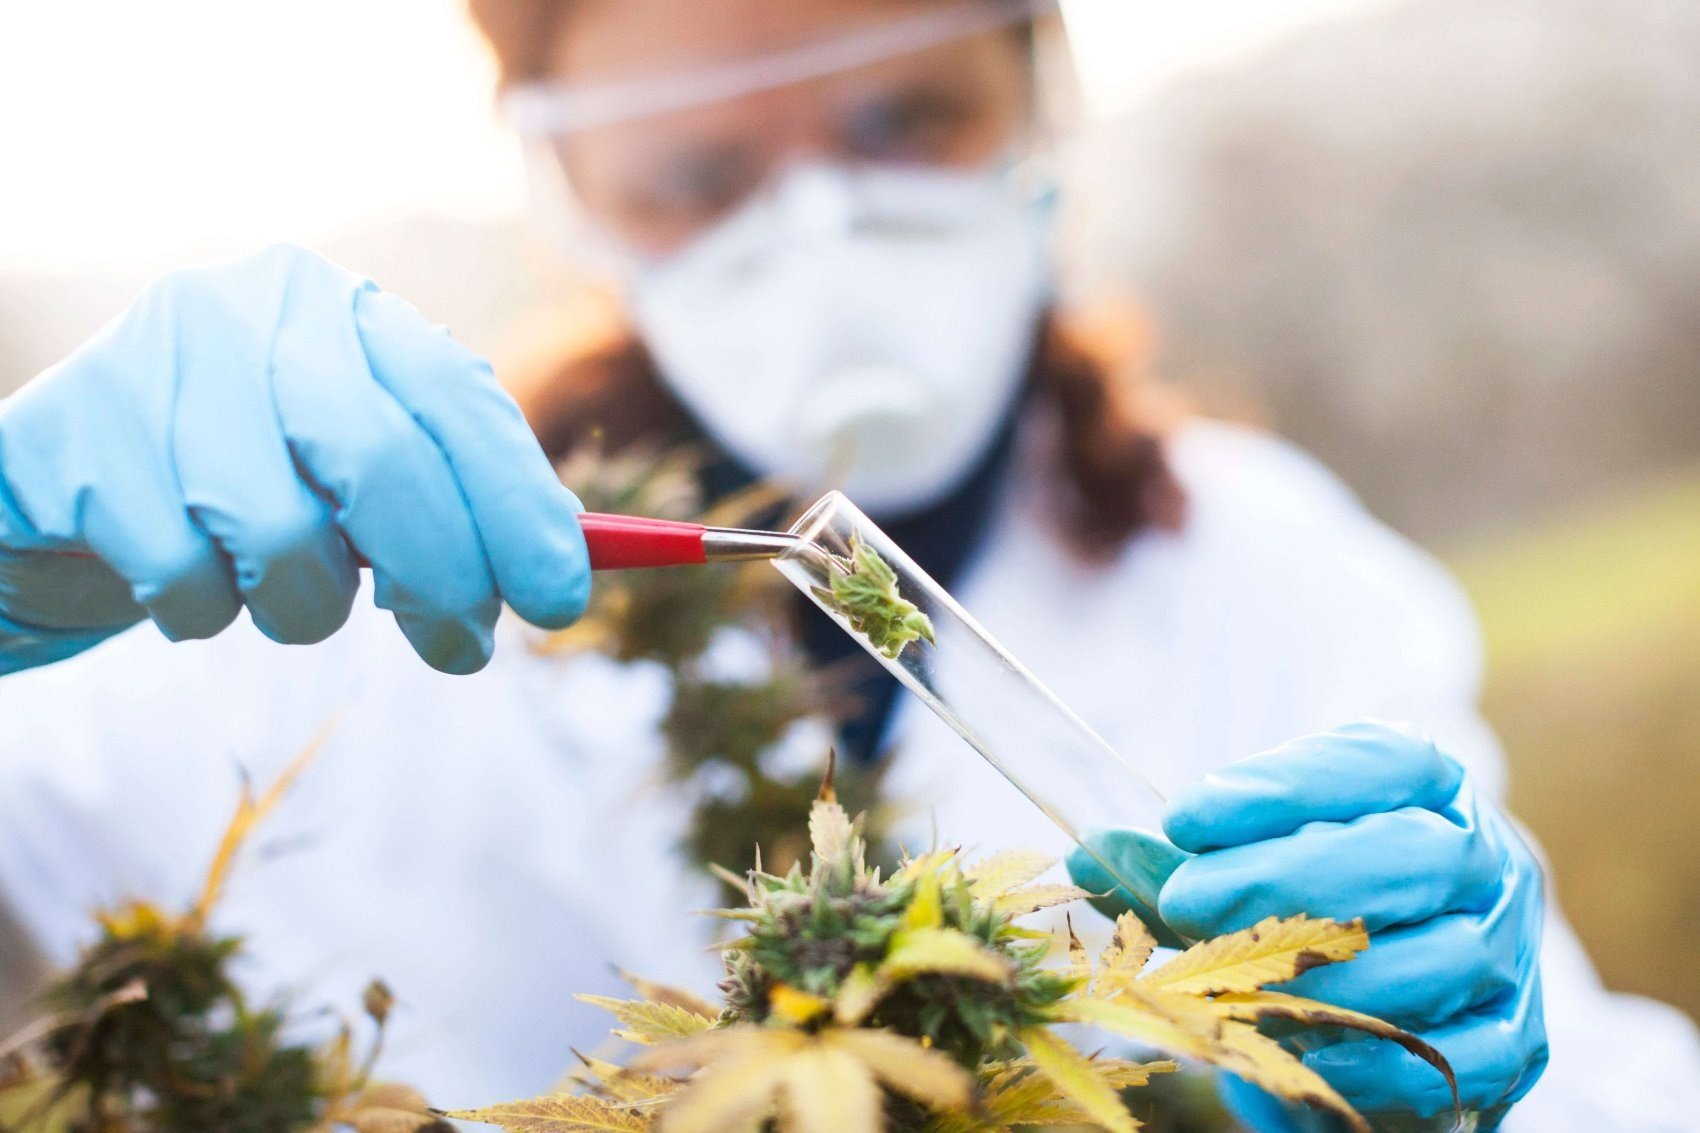 Medical Marijuana: Misconceptions and Clinical Considerations